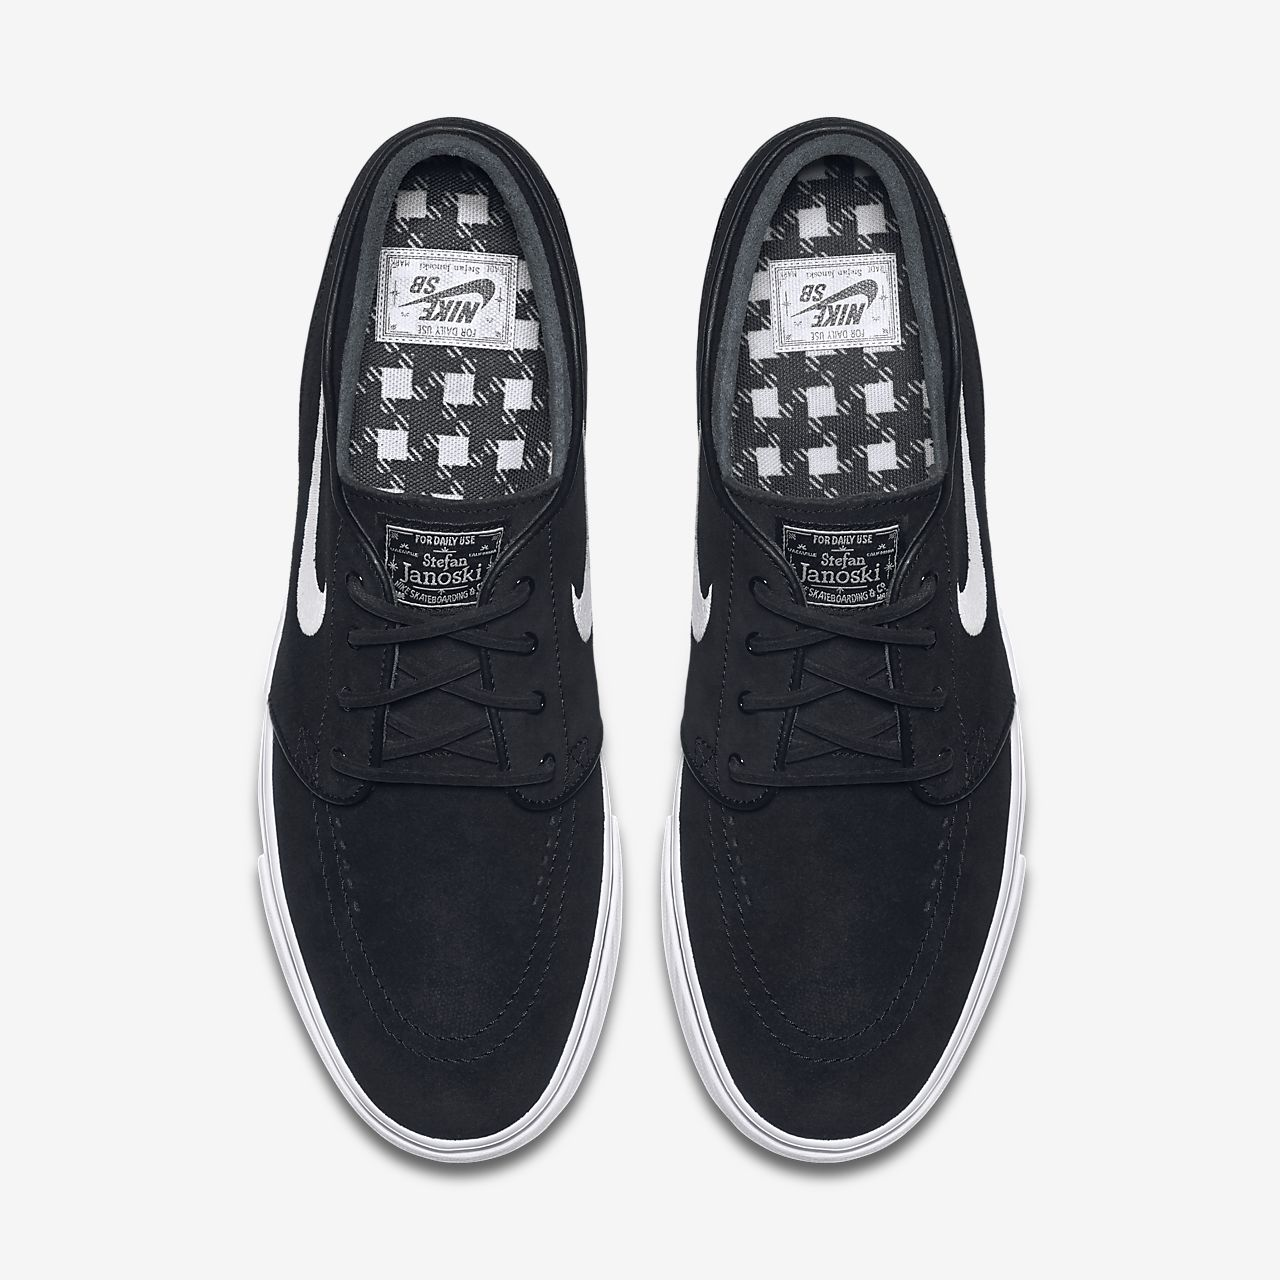 check out e2e3e 54756 ... Nike SB Zoom Stefan Janoski OG Men s Skate Shoe